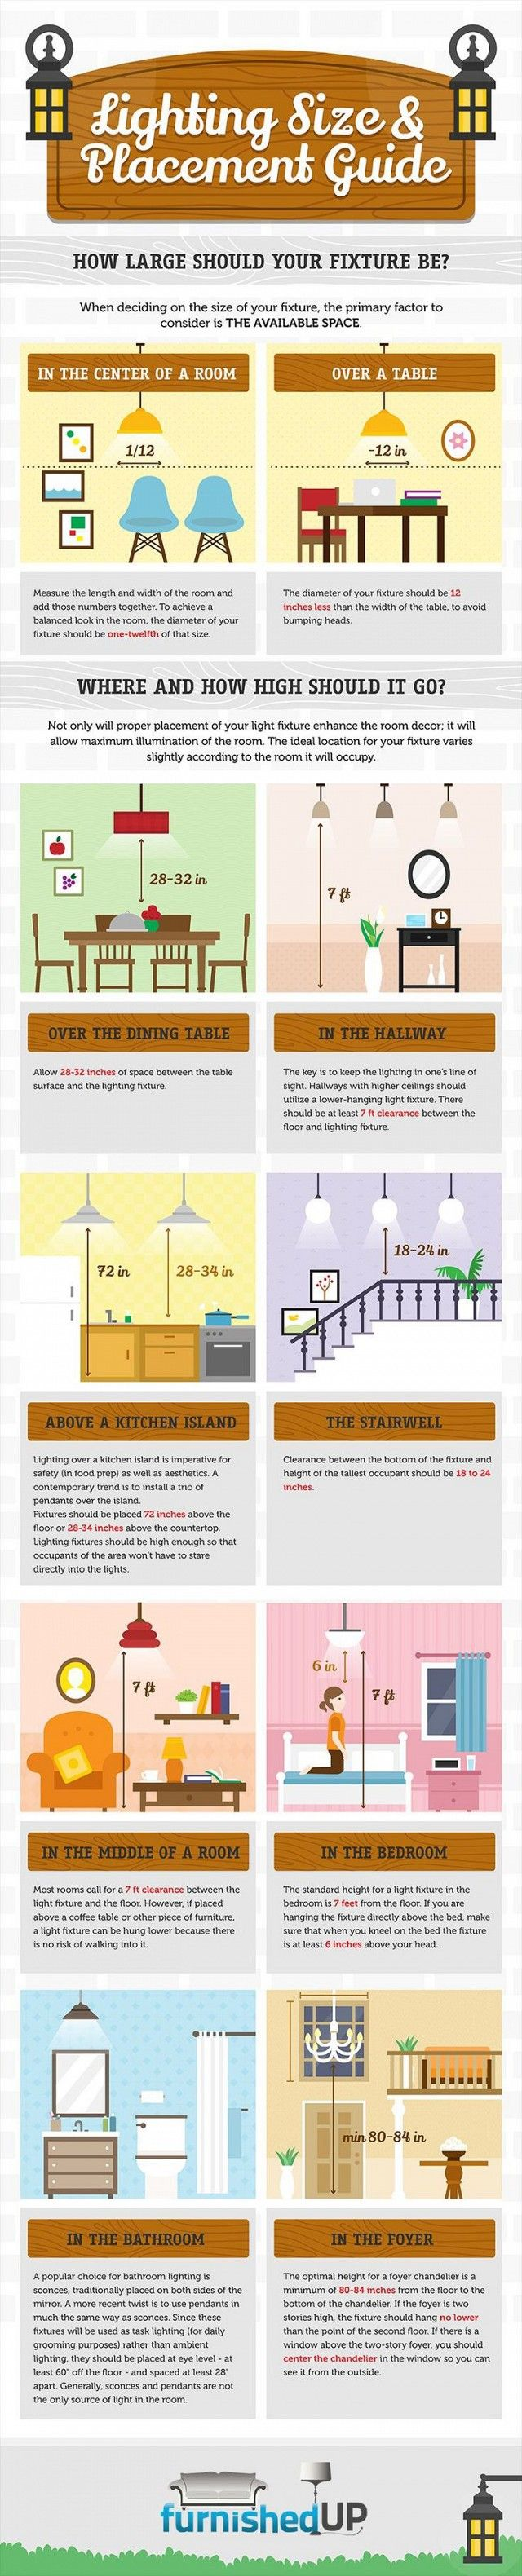 25 best ideas about architectural lighting design on - Interior lighting design guidelines ...